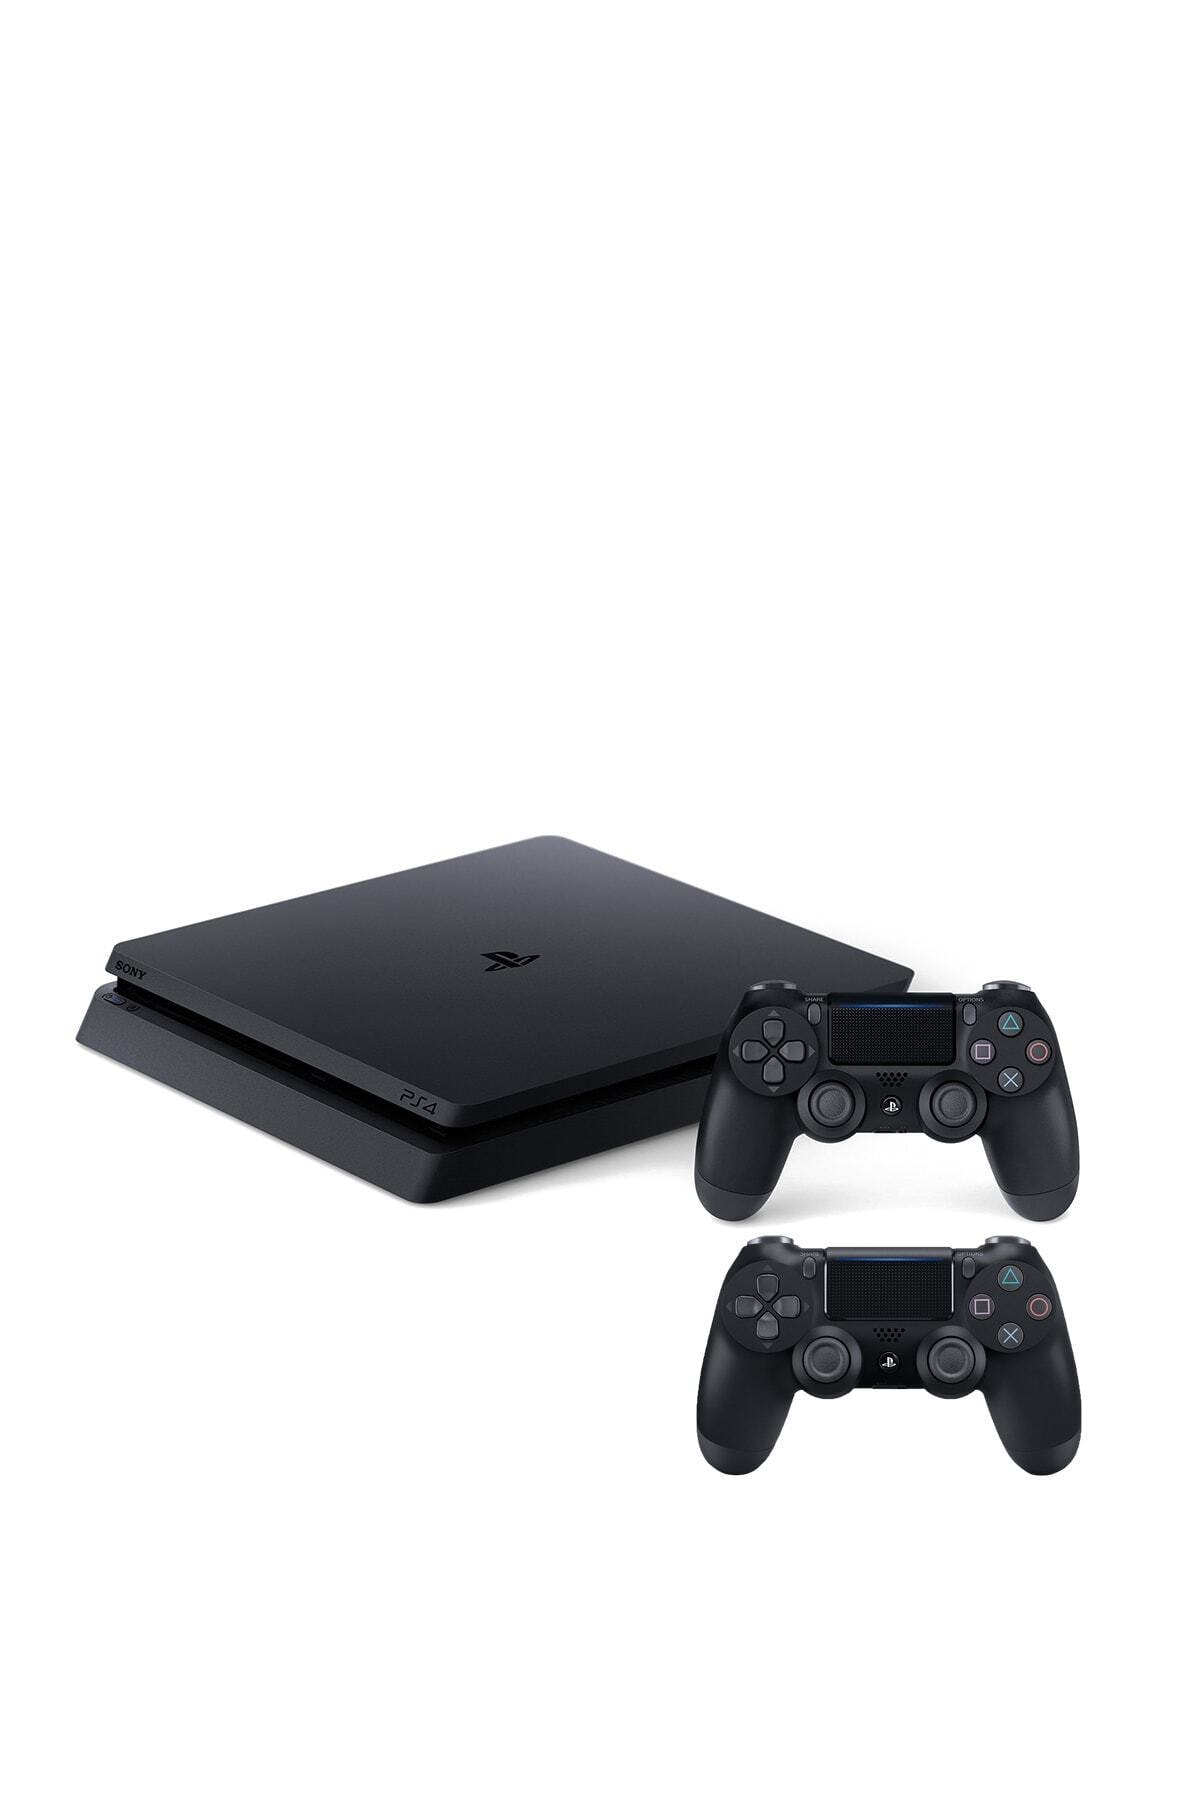 Sony Playstation 4 Slim 1 Tb + 2. Ps4 Kol + Ps4 Fifa 2021 2